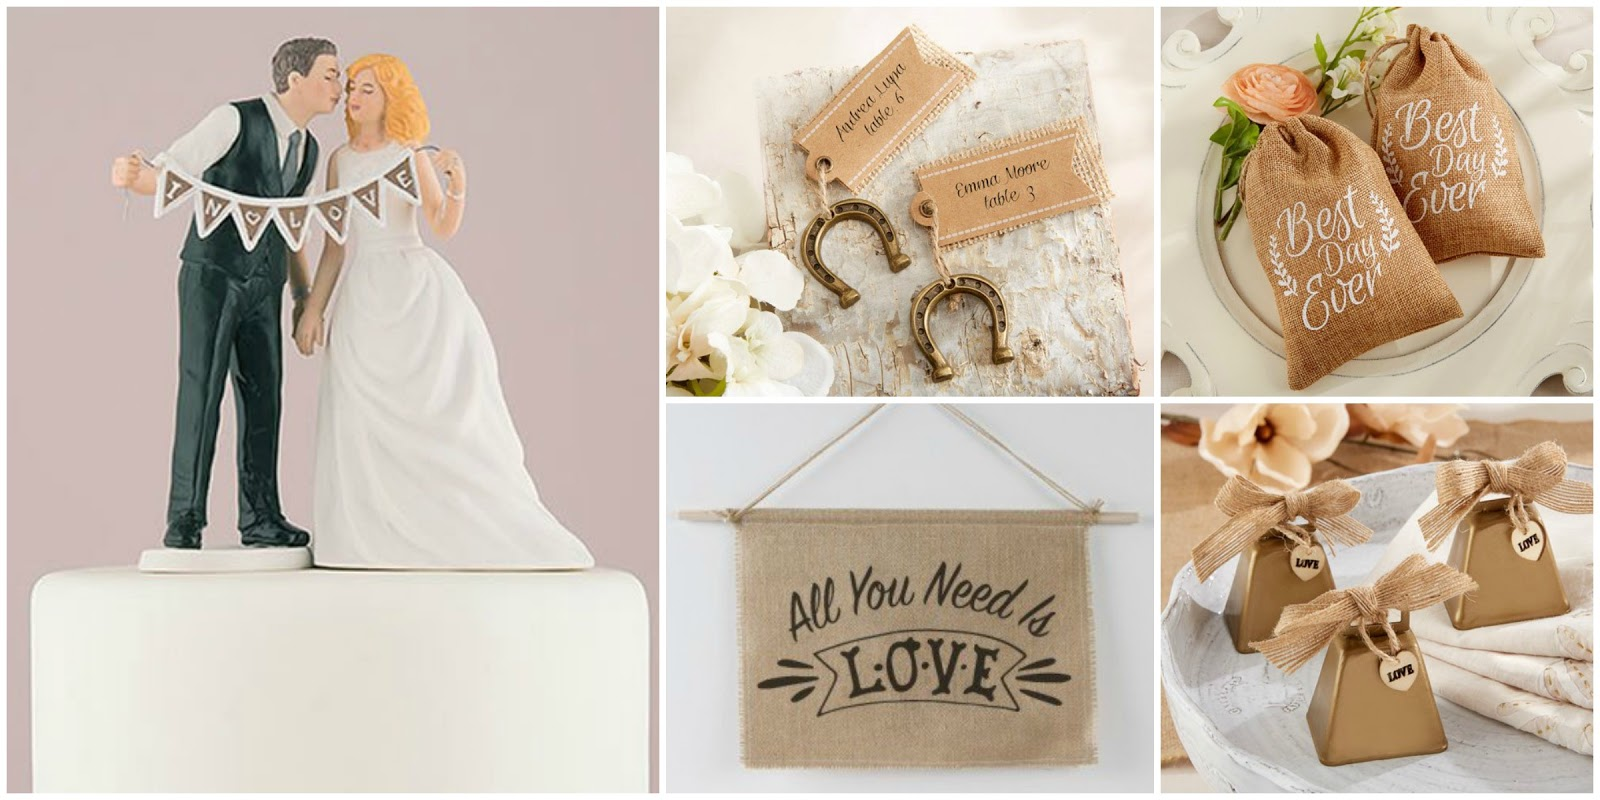 7 Wedding Theme Ideas to Fall in Love With